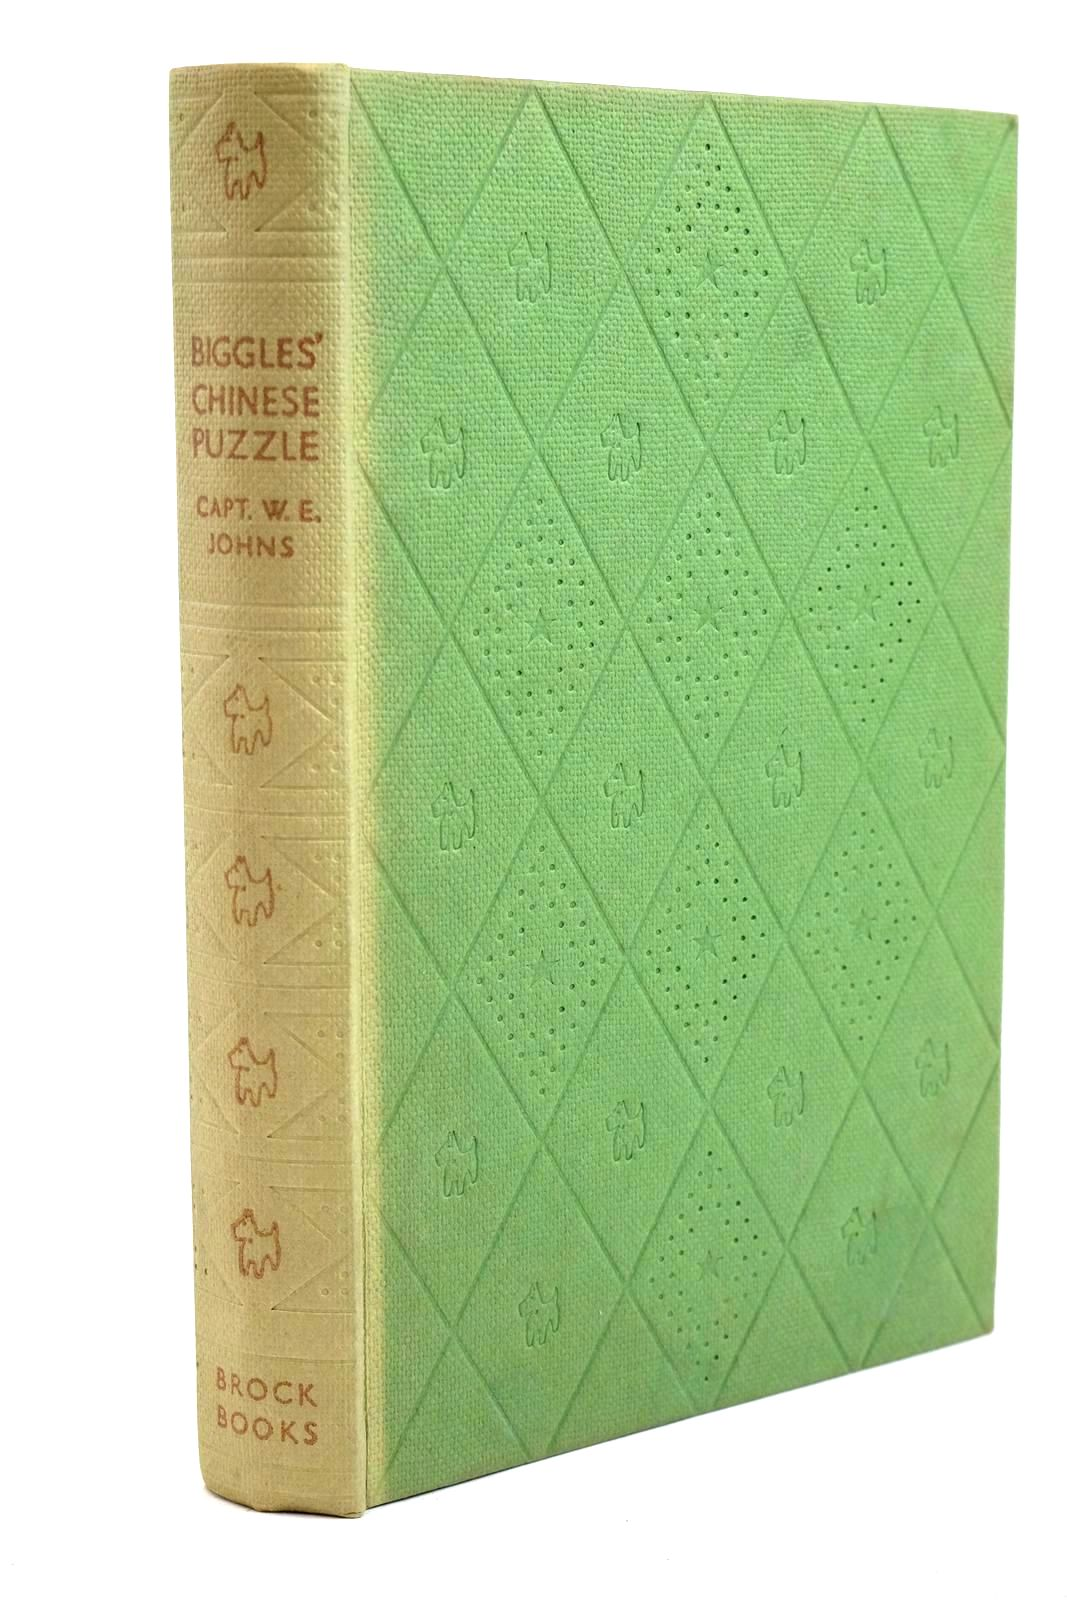 Photo of BIGGLES' CHINESE PUZZLE written by Johns, W.E. illustrated by Stead, Leslie published by Brockhampton Press Ltd. (STOCK CODE: 1320706)  for sale by Stella & Rose's Books